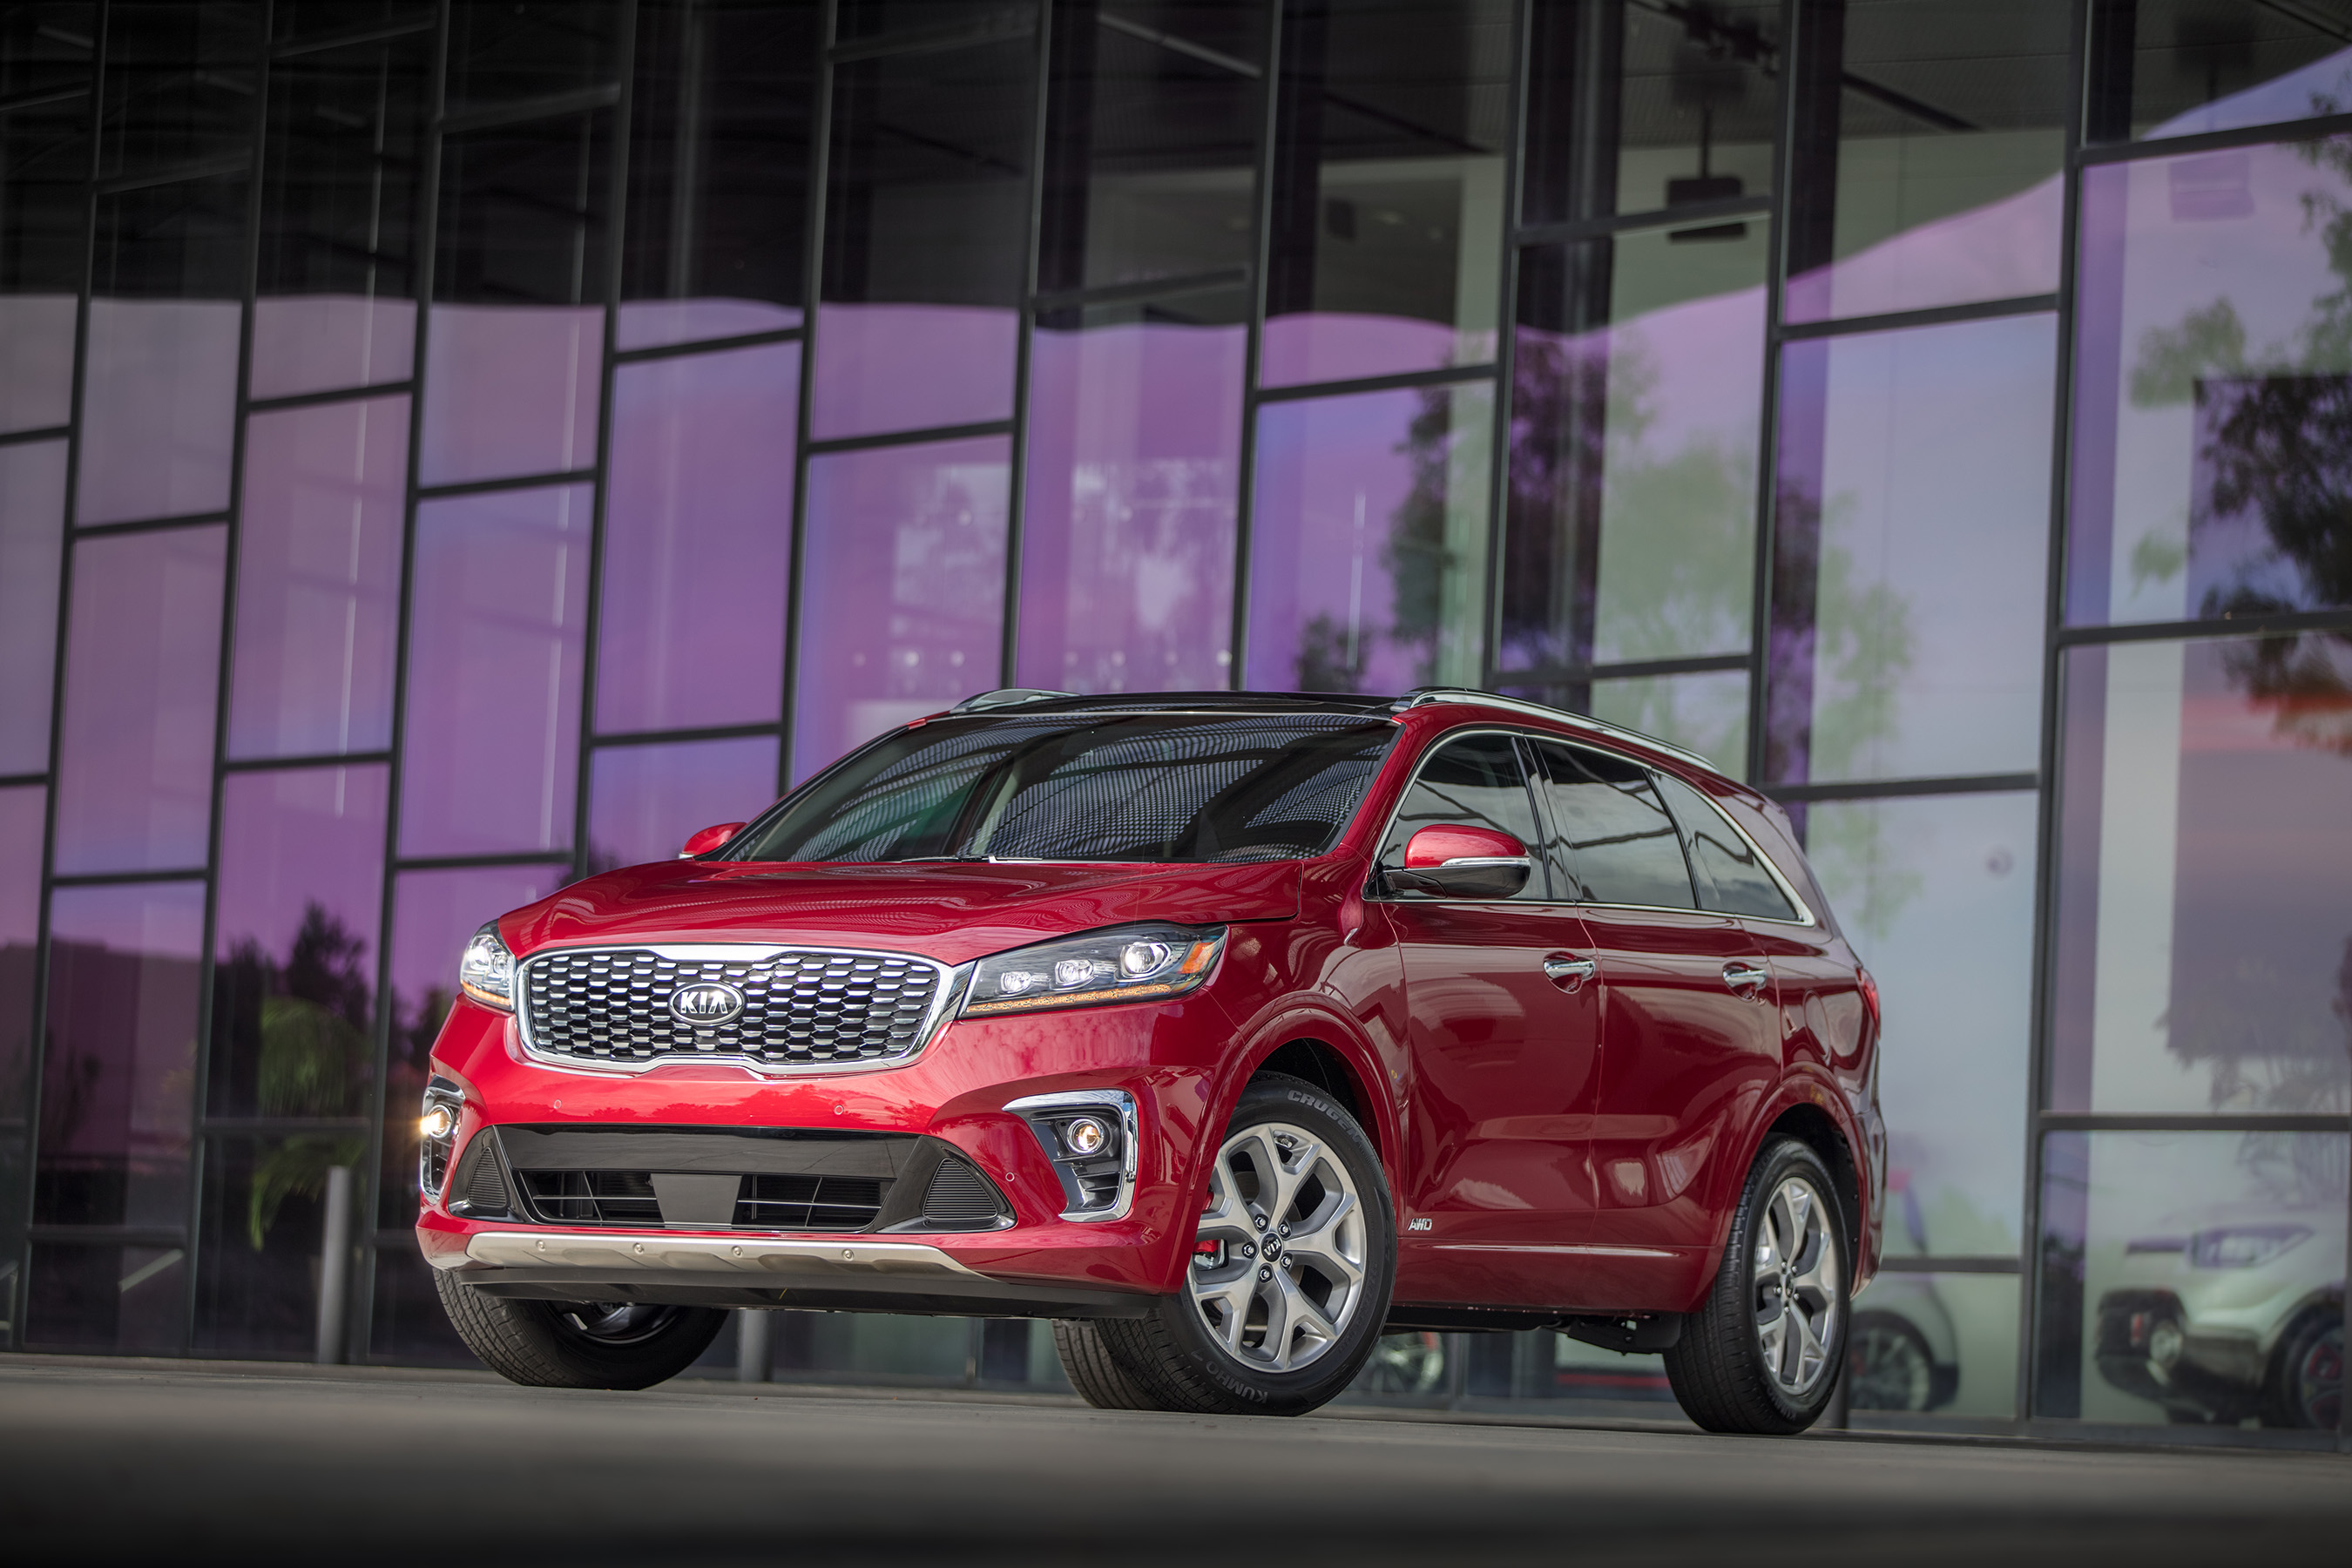 kia los better h crossover news subtly drive angeles a sorento first